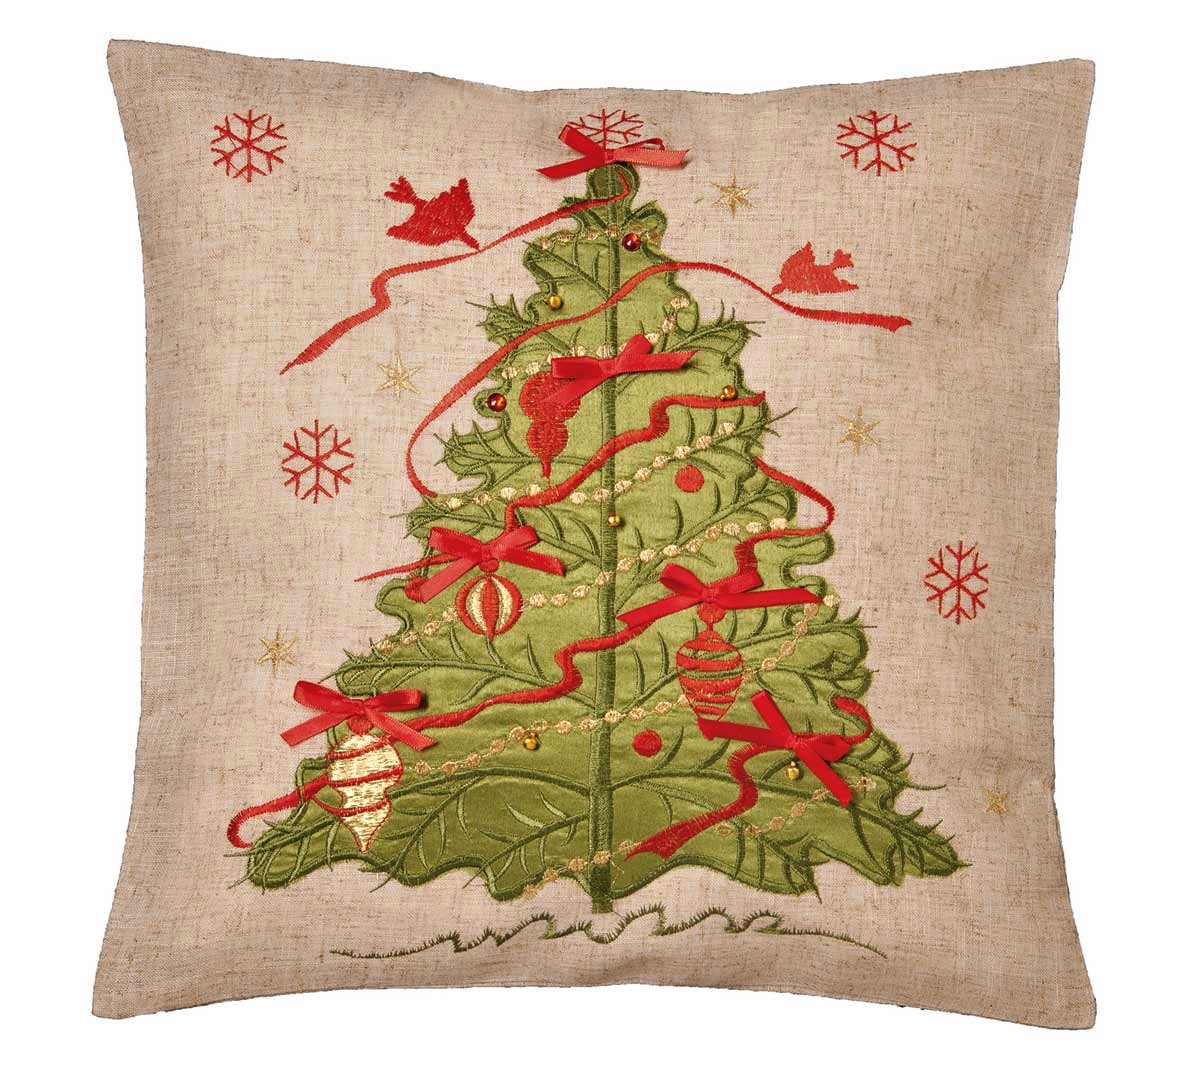 Tree And Ribbon Applique Cushion Cover 43x43cm 16x16